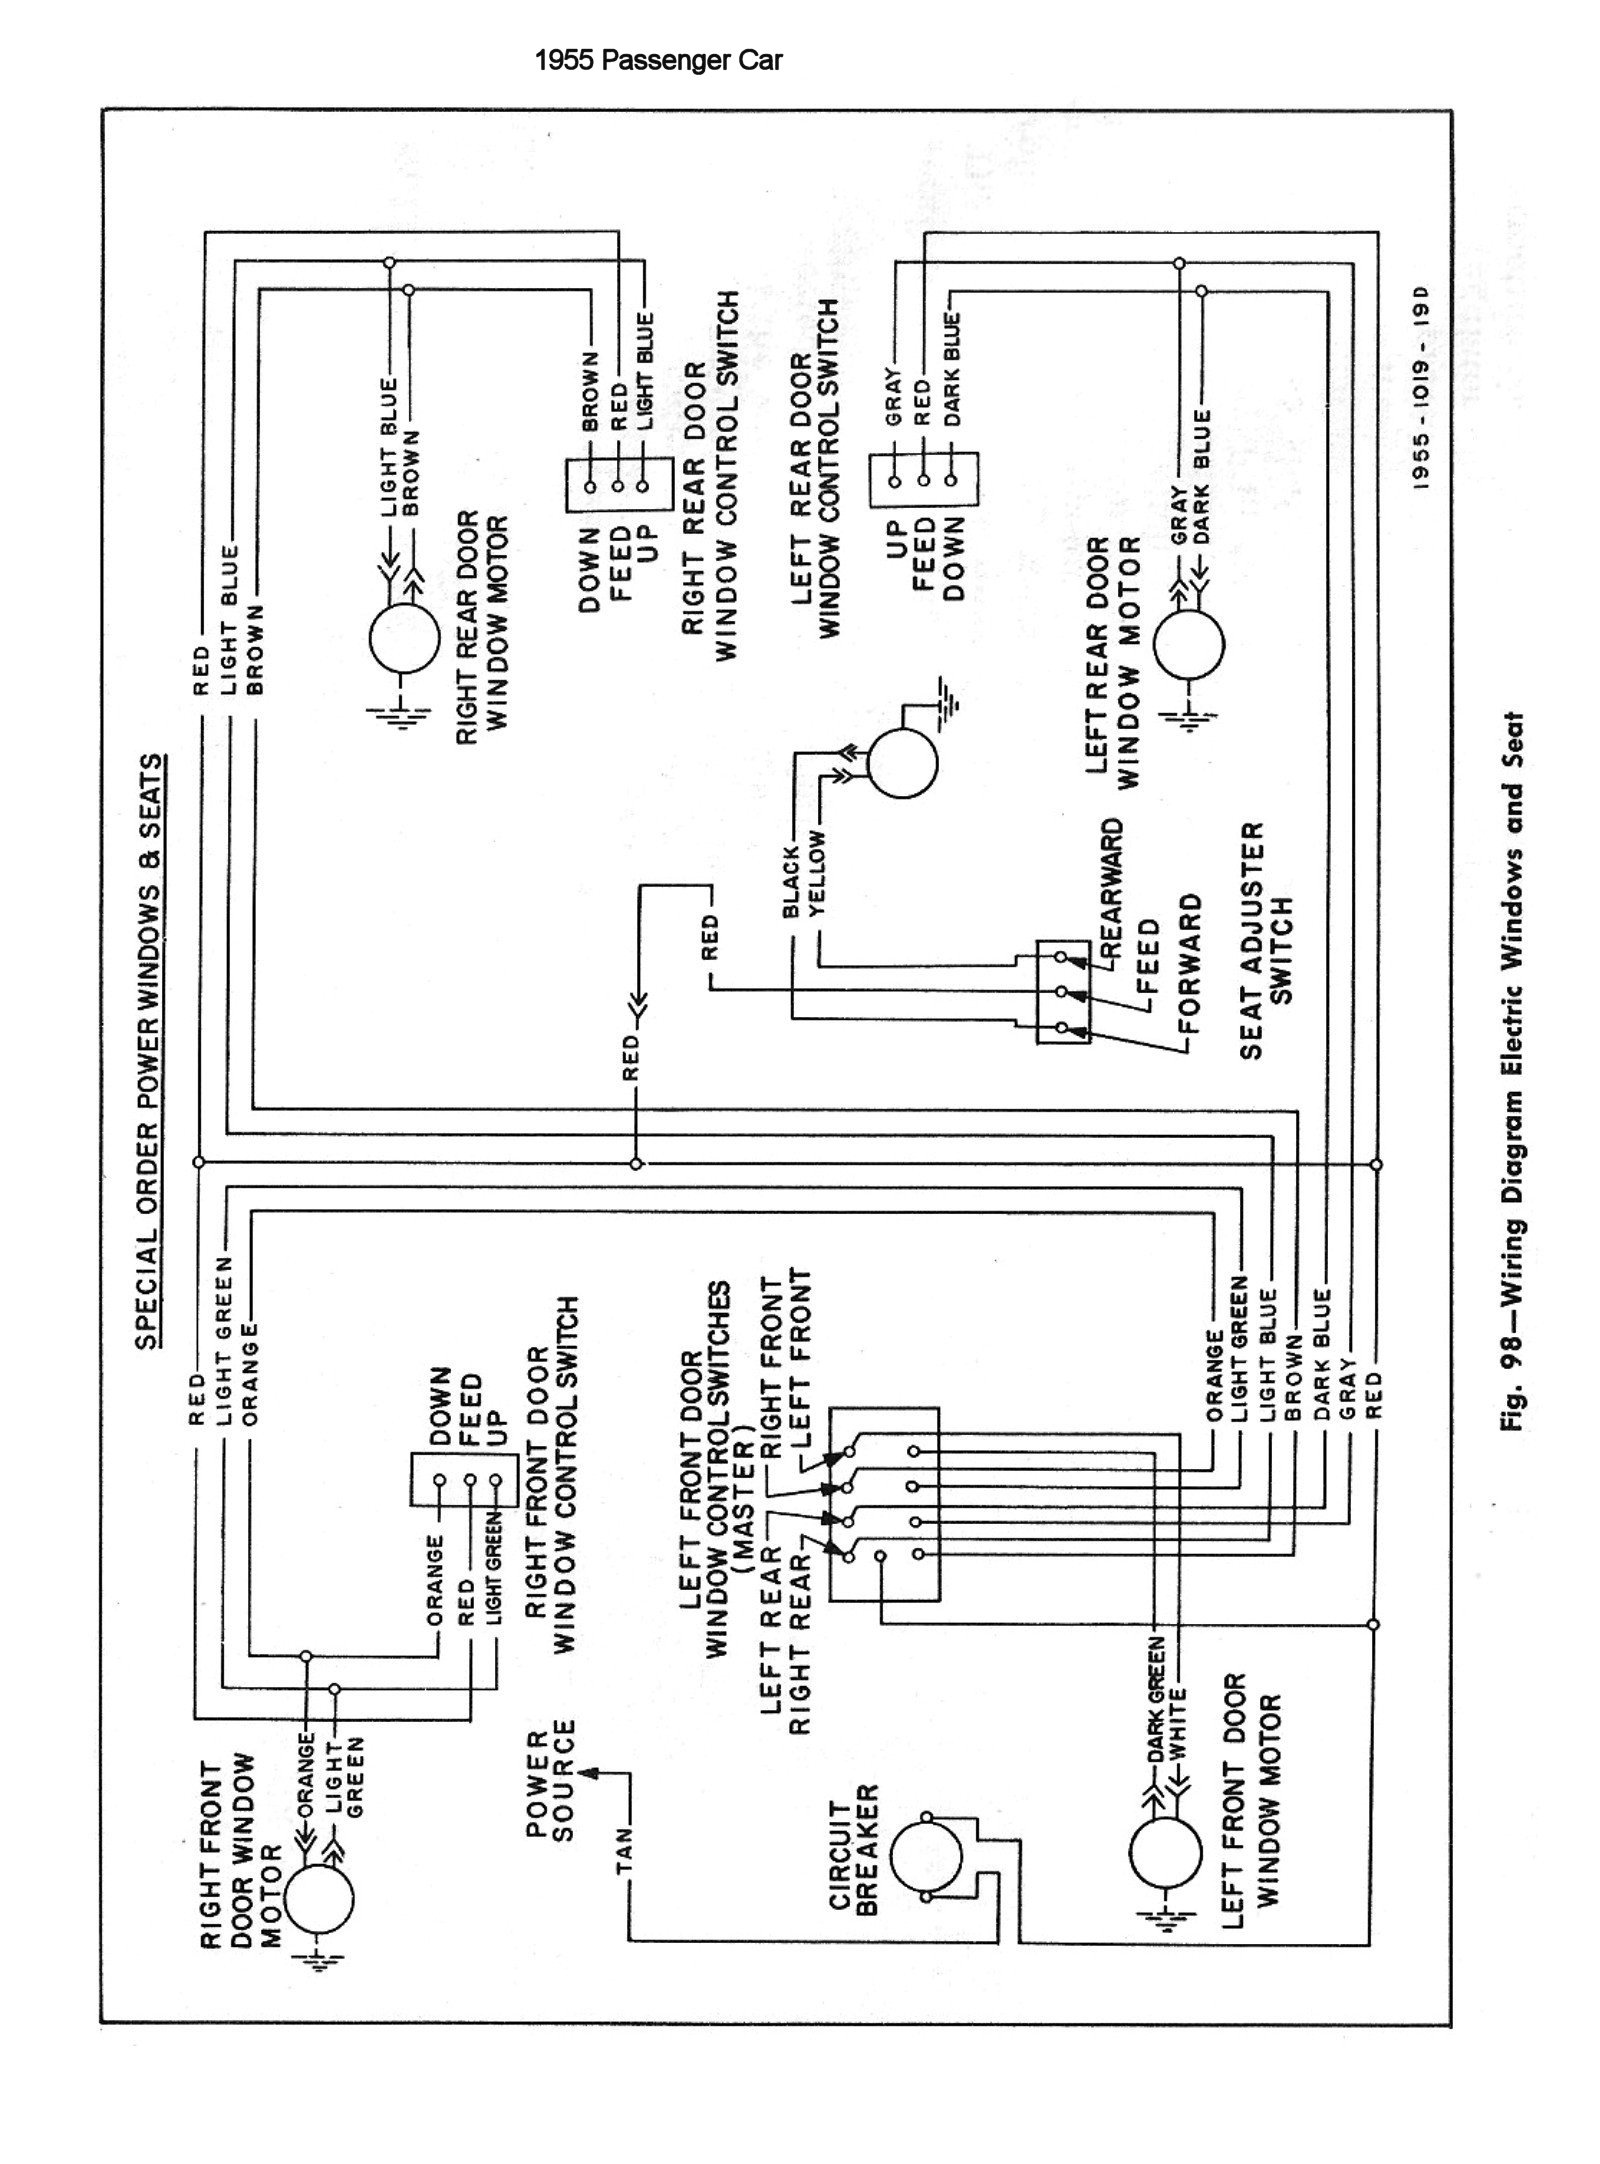 Isuzu Truck Wiring Diagram Window | Wiring Liry on ignition switch sensor, ignition switch replacement, 1969 mustang ignition switch diagram, ignition switch troubleshooting, ignition switch index, ignition switch relay diagram, chevy ignition switch diagram, ford expedition fuel diagram, ignition tumbler diagram, yj ignition diagram, ignition switch wire, ignition switch cable, ignition switch repair, harley ignition switch diagram, ignition switch fuse, 2001 jeep grand cherokee fuse box diagram, ignition switch system, ignition switch tools, ignition switch plug, universal ignition switch diagram,